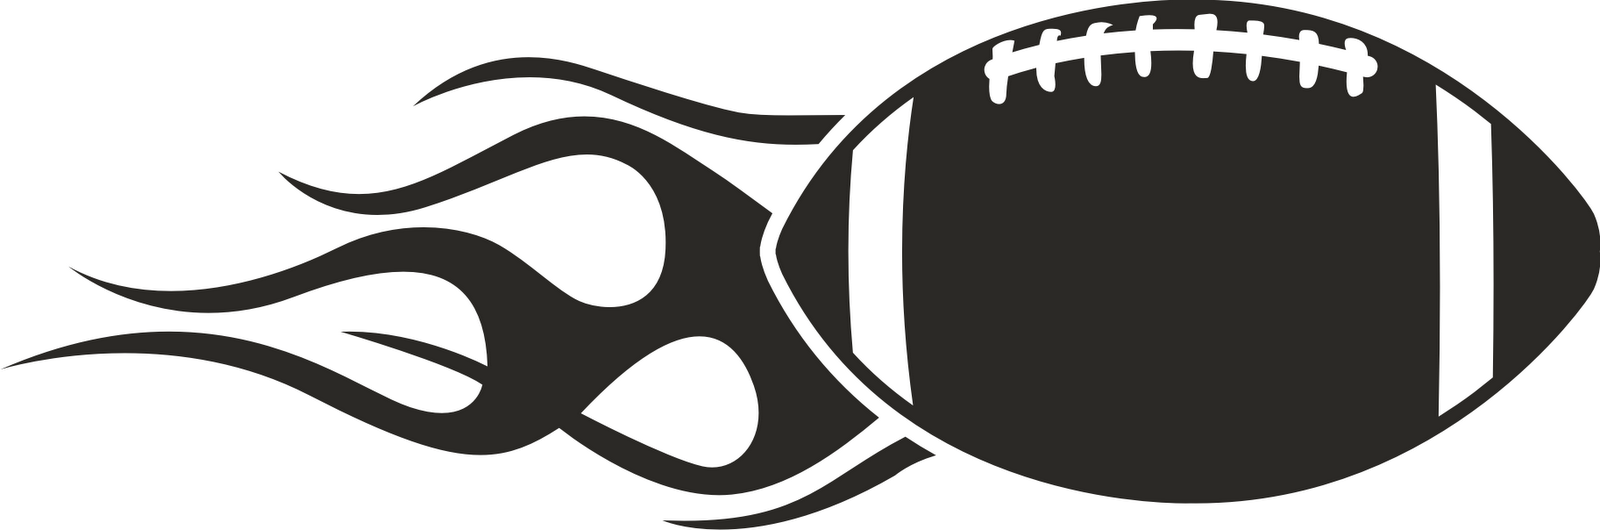 1600x530 Football Outline Clipart 6